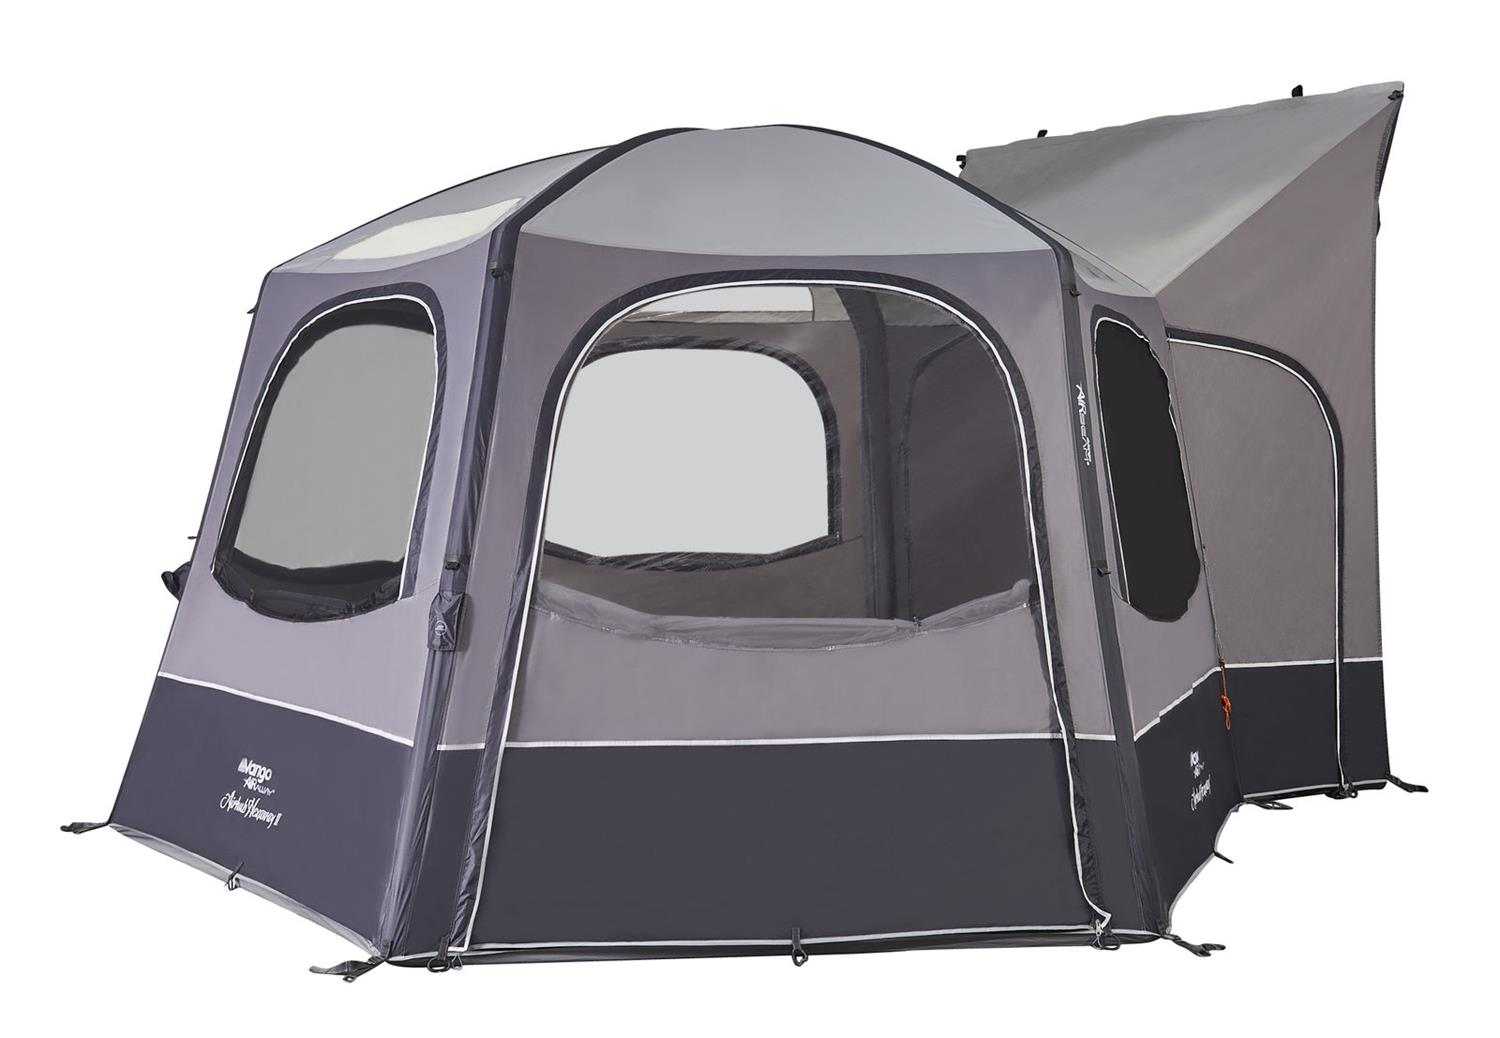 Vango's Hexaway II Vehicle awning.